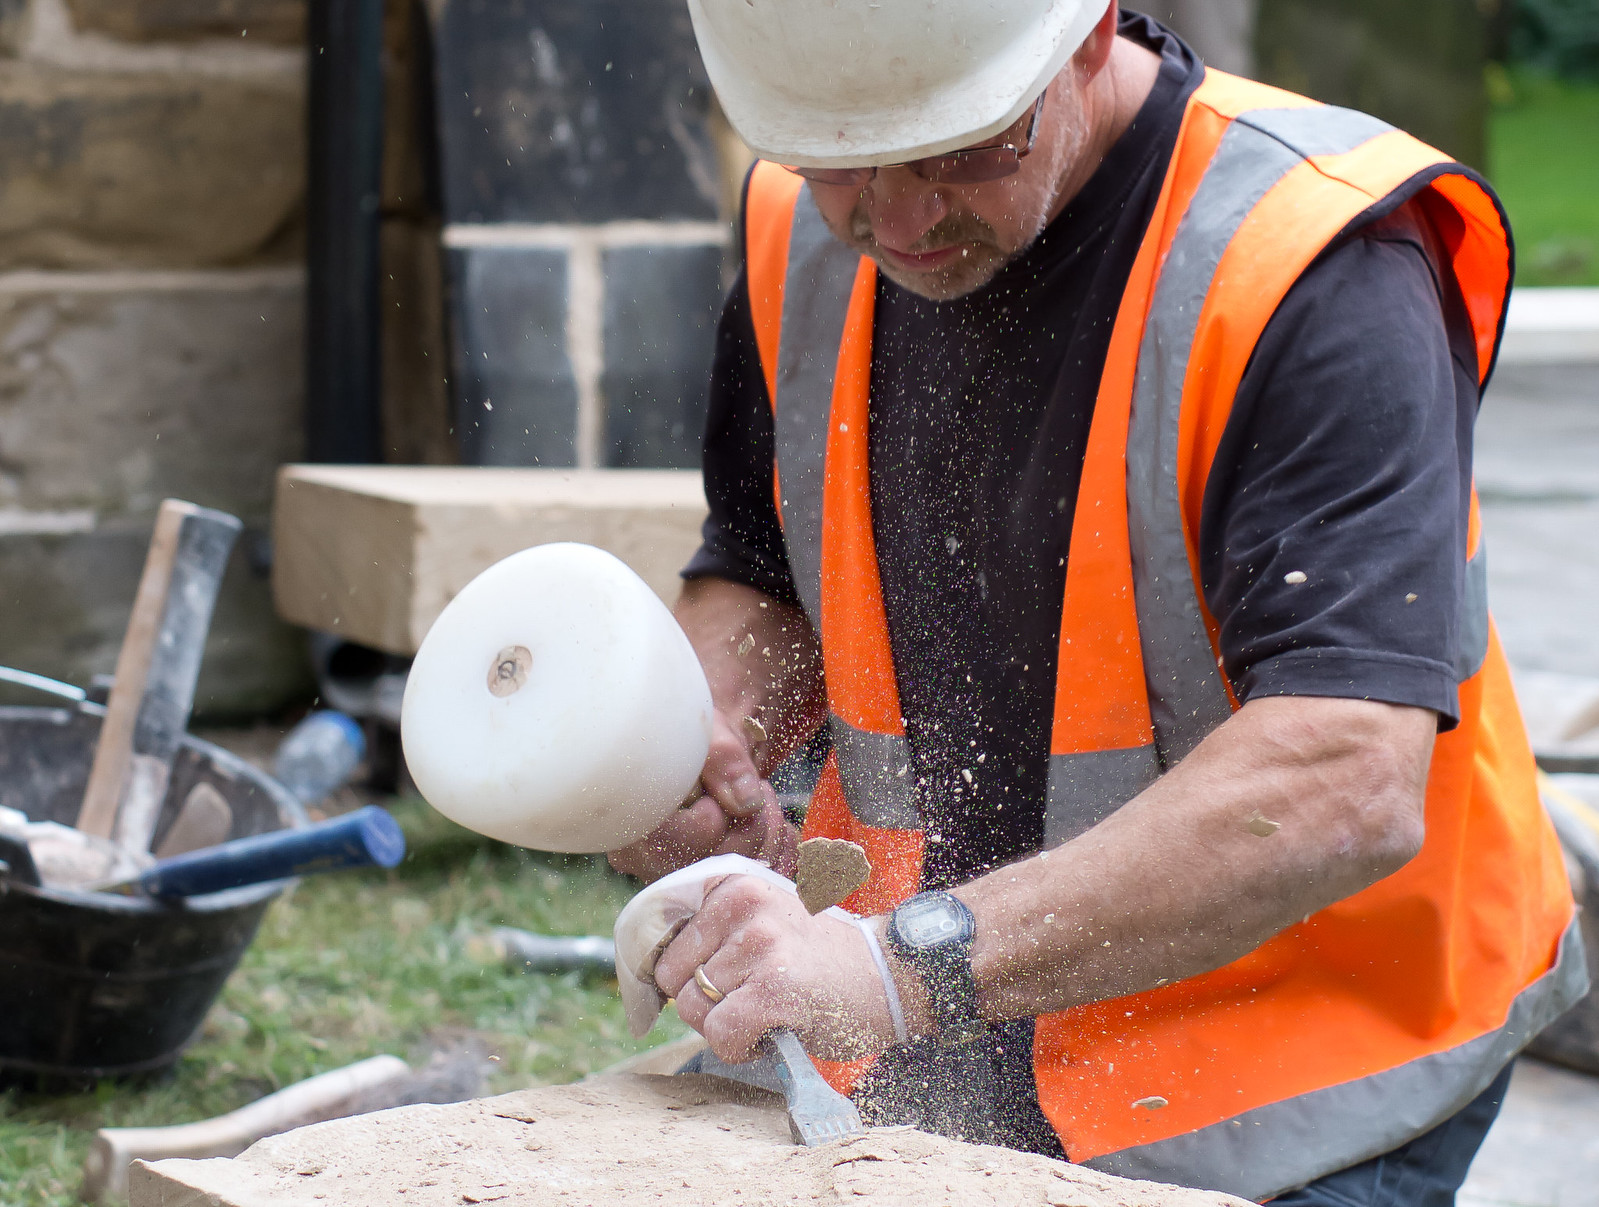 Steve Coupland works the stone at Holy Trinity Goodramgate, York